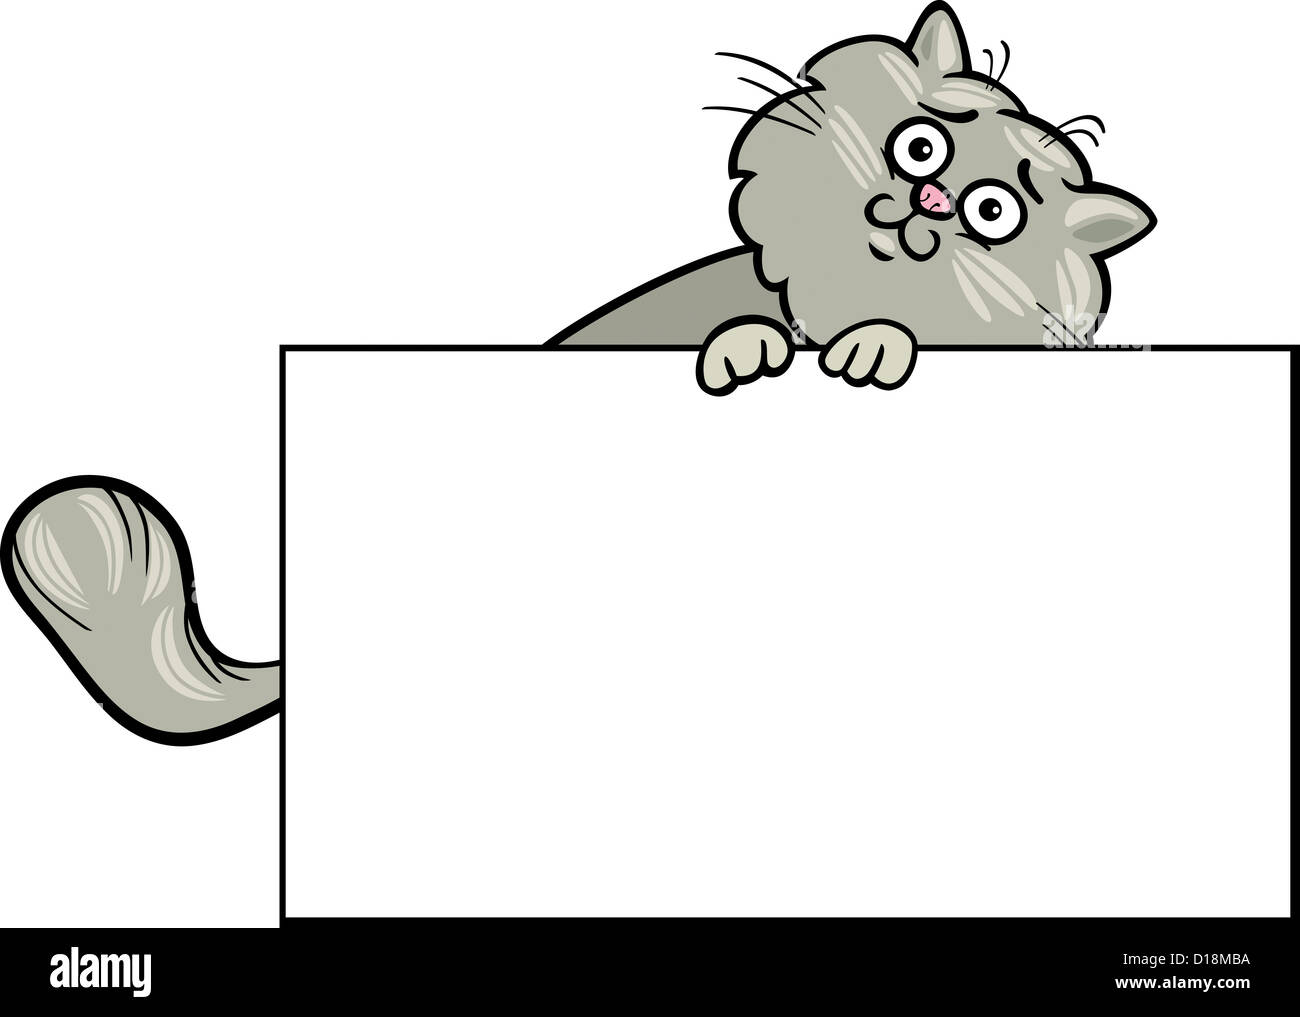 Cartoon illustration of funny fluffy cat with white card or board cartoon illustration of funny fluffy cat with white card or board greeting or business card design isolated magicingreecefo Choice Image